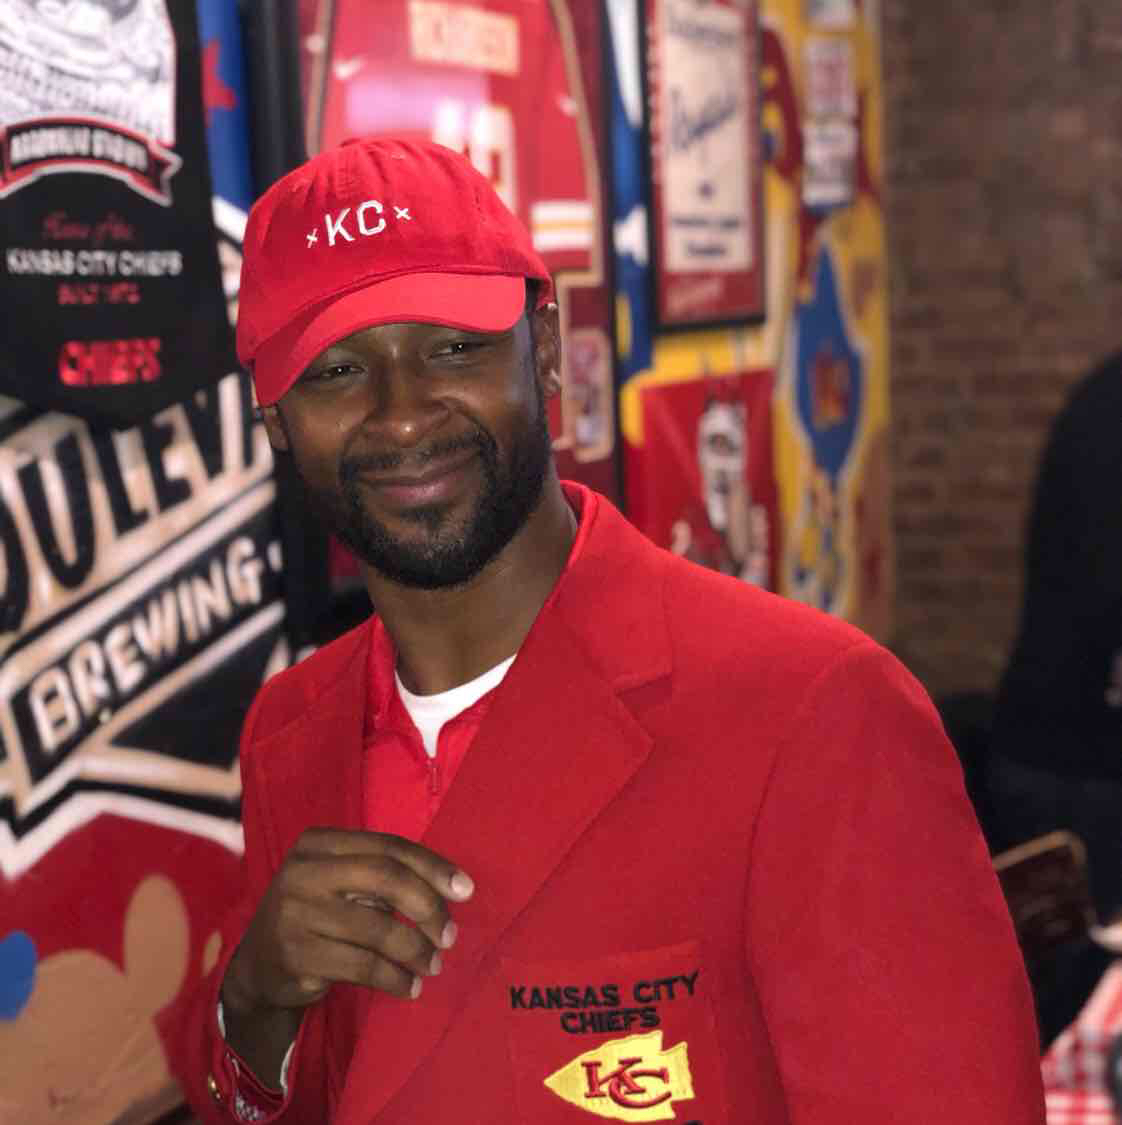 Avatar of Dante Hall